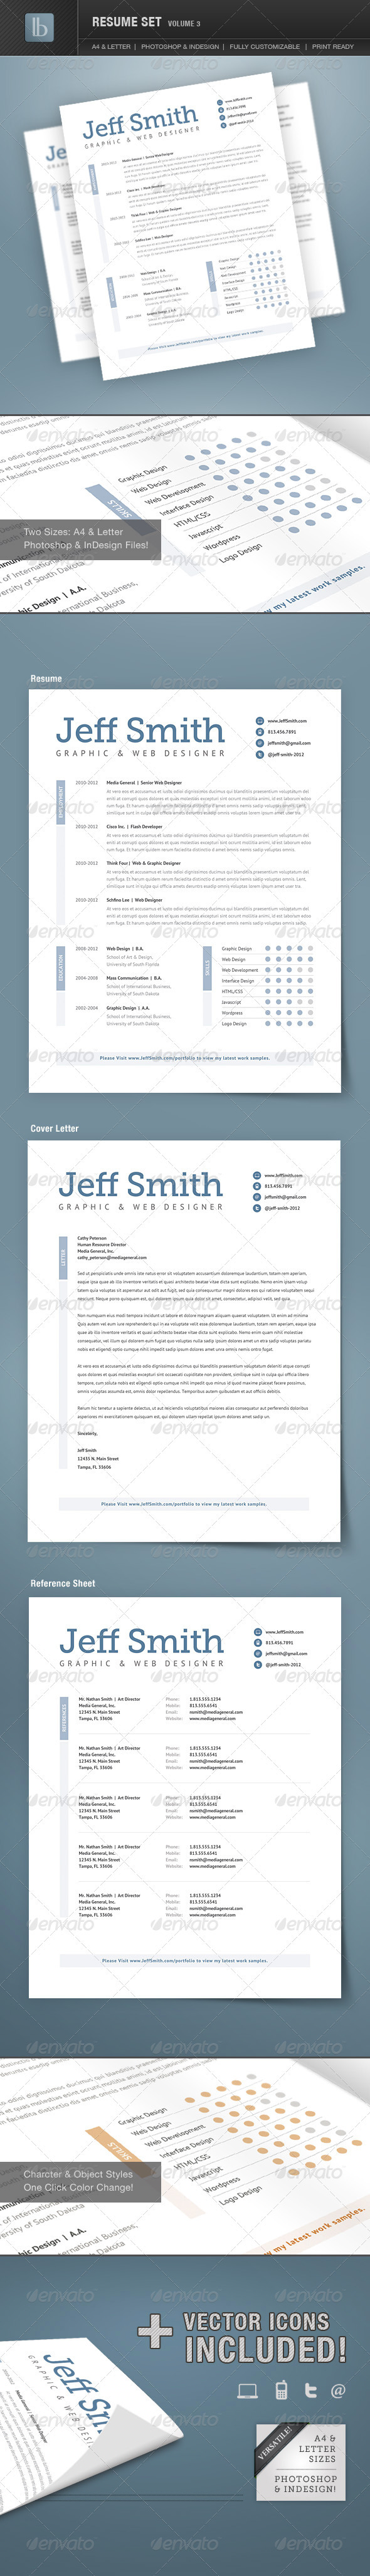 Resume Set | Volume 3 - Resumes Stationery